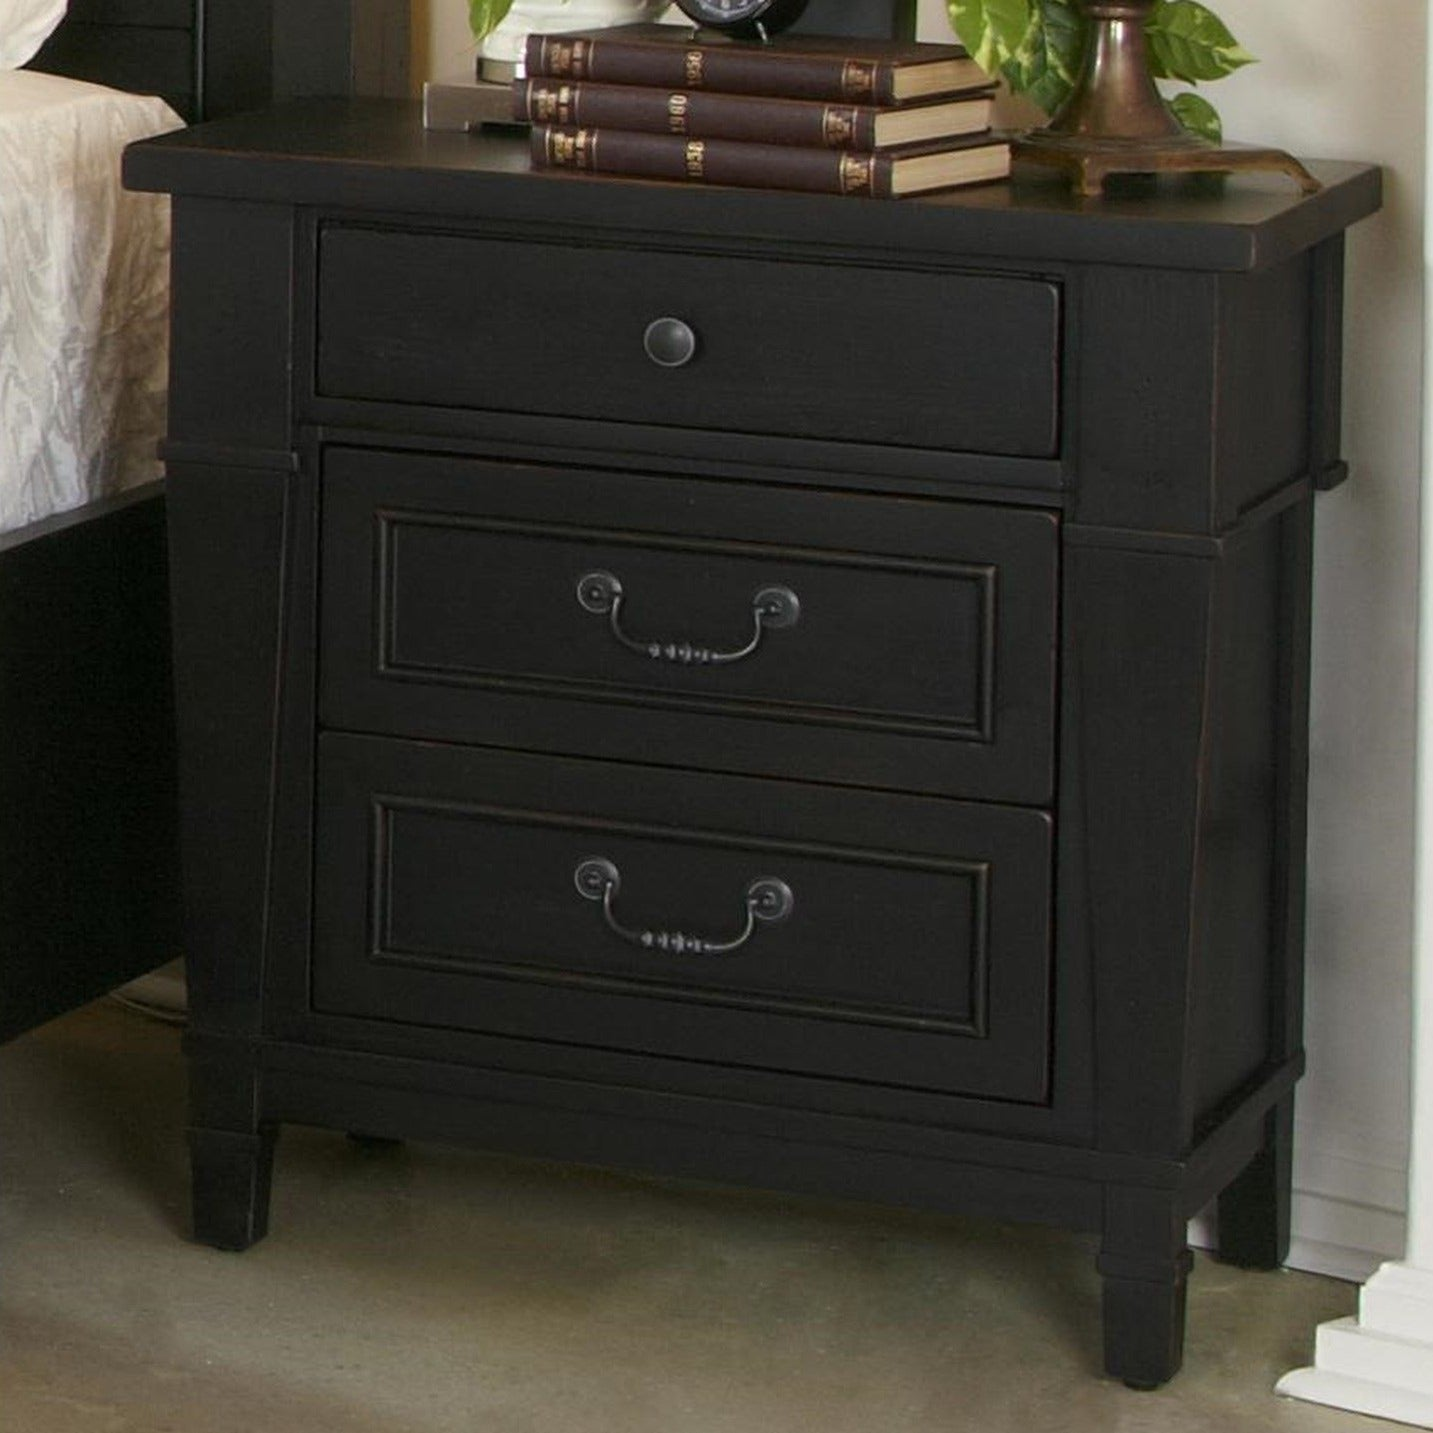 Ravenswood 3-Drawer Nightstand